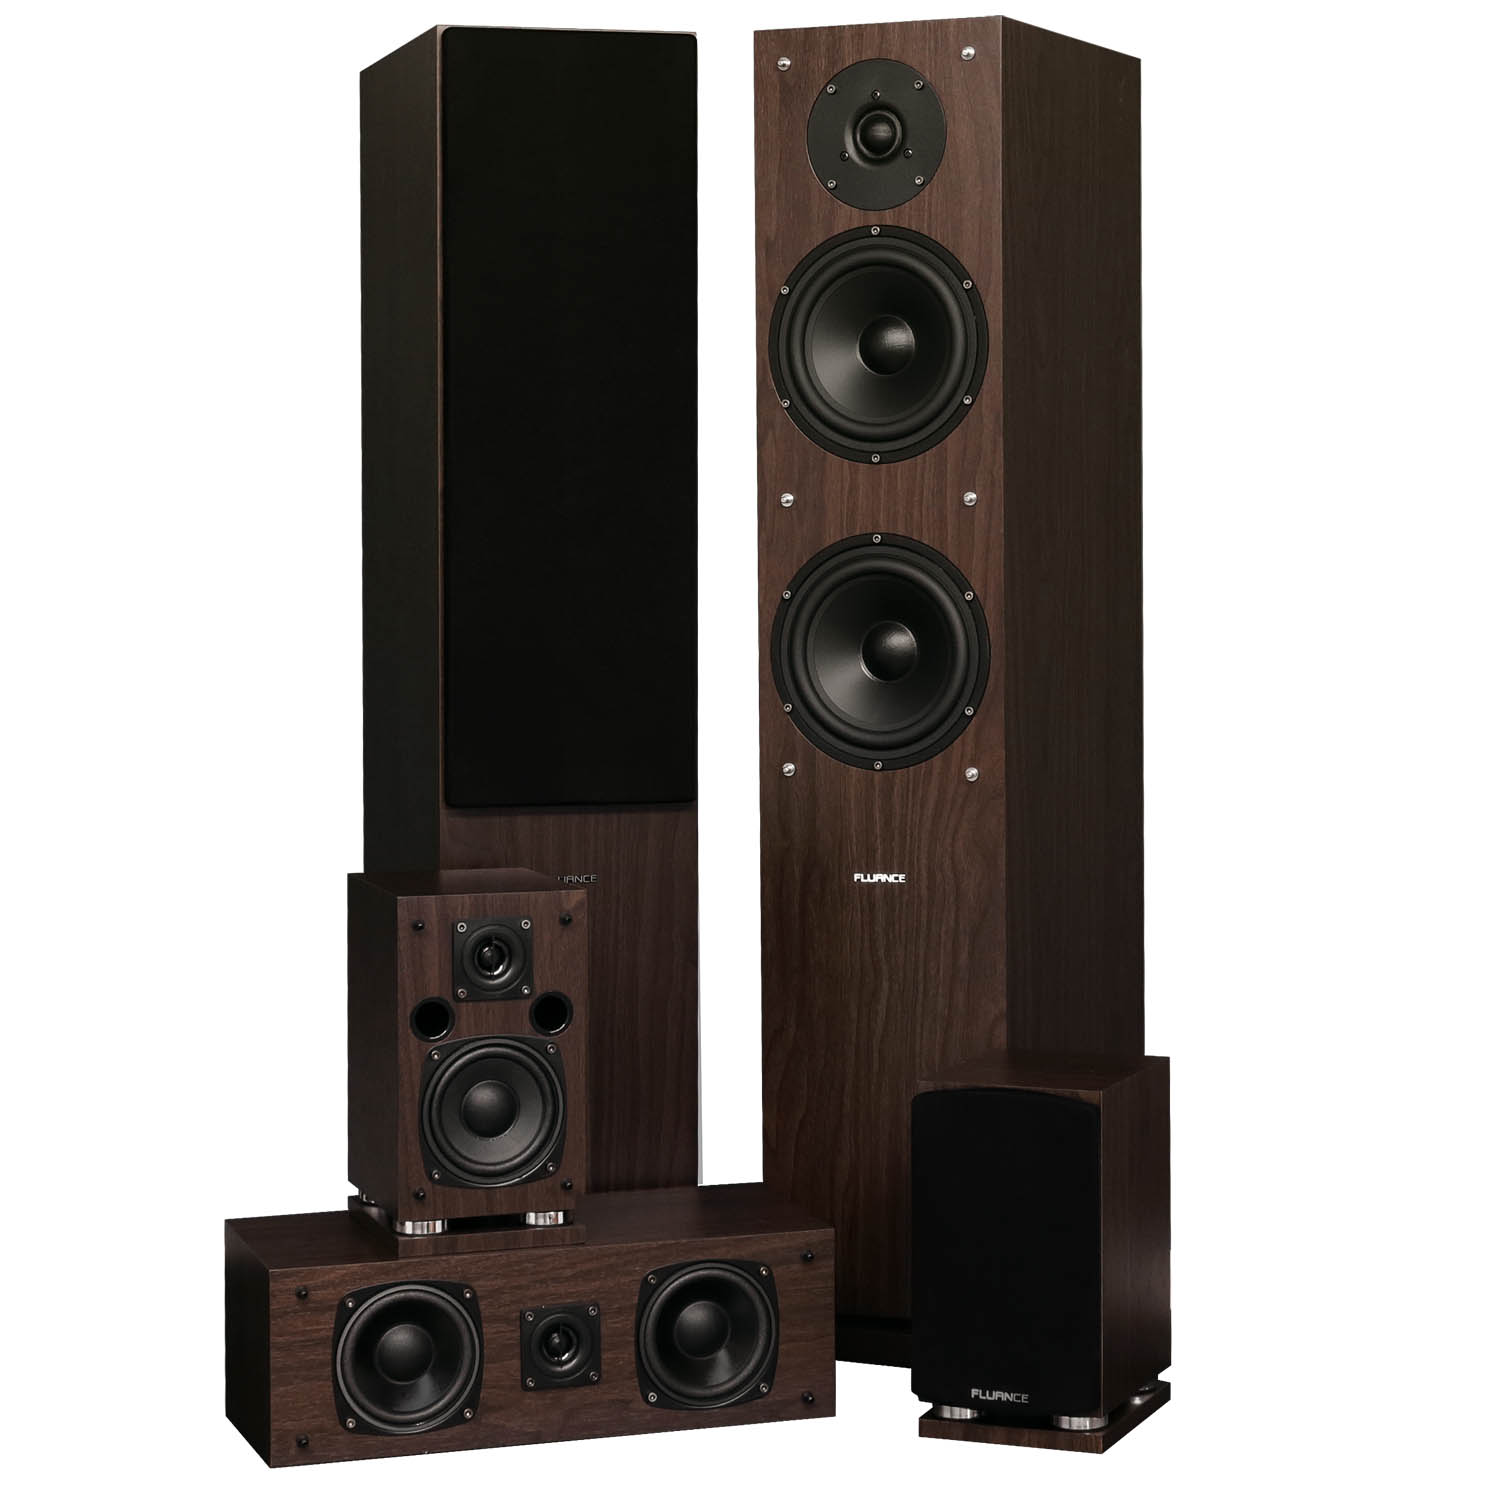 Fluance SXHTBW High Definition Surround Sound Home Theater 5.0 Channel Speaker System including Floorstanding... by Fluance